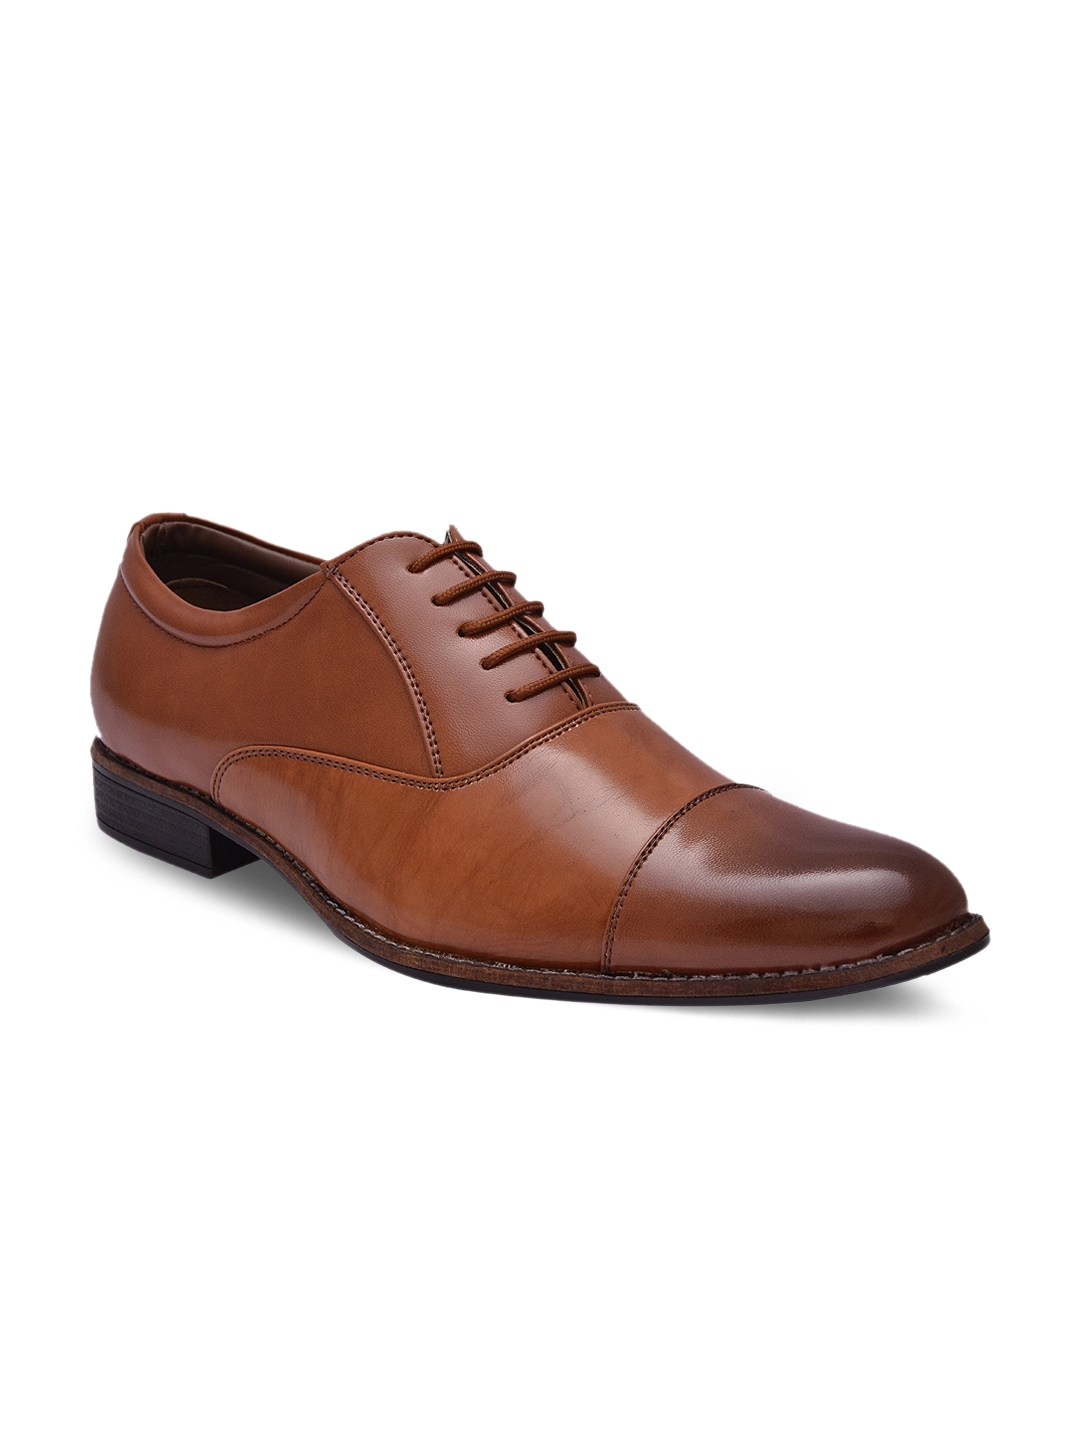 Sir Corbett Men Tan Brown Formal Shoes Price in India